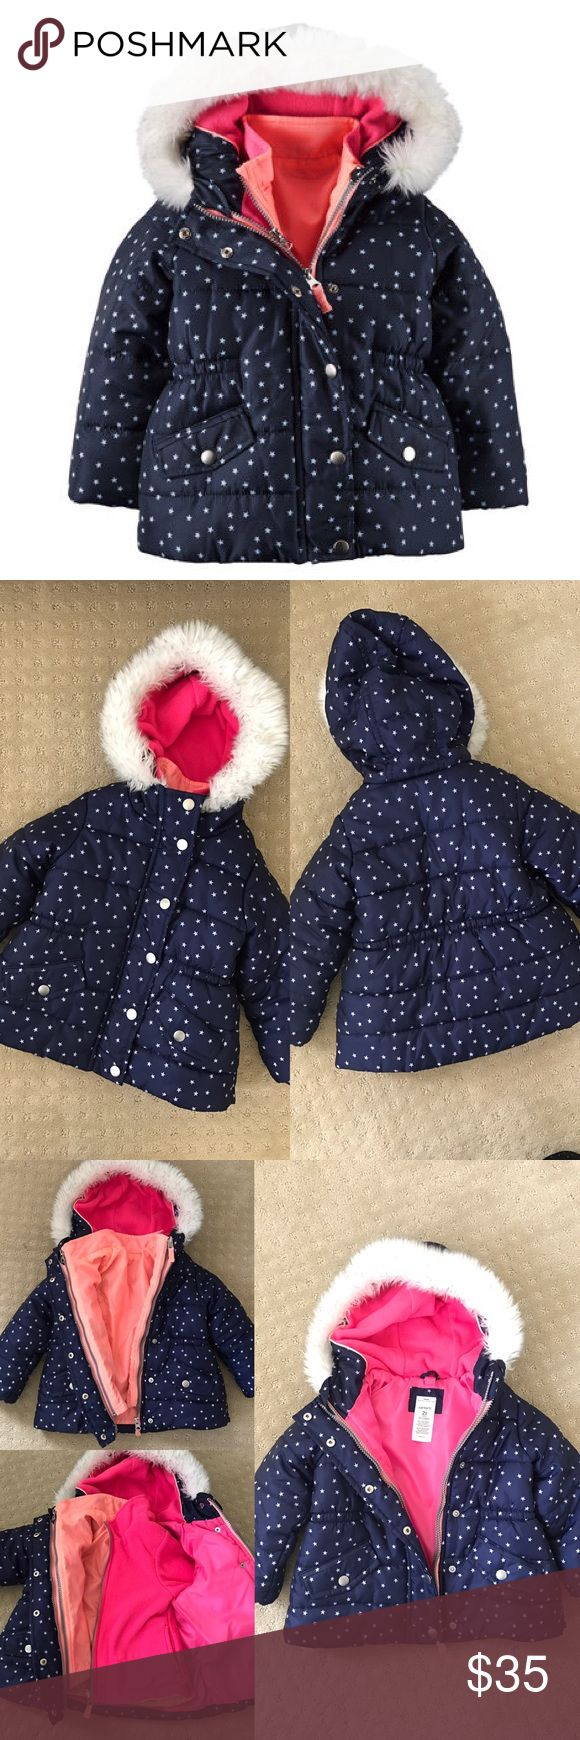 Carters 2T 4-in-1 Jacket System in Navy Carters size 2T 4-in-1 jacket system. Navy blue with white star print and faux-fur trimmed hood. Zip front + snap button closure. Bright pink and orange inner fleece jacket. Pockets on both outer parka and both sides of inner jacket. Worn a handful of times and in very good and clean condition. 100% polyester shell, lining and fill. Comes from a smoke-free home. 4 ways to wear it: 1. Outer parka jacket 2 & 3 Reversible inner fleece jacket 4. Zip them…